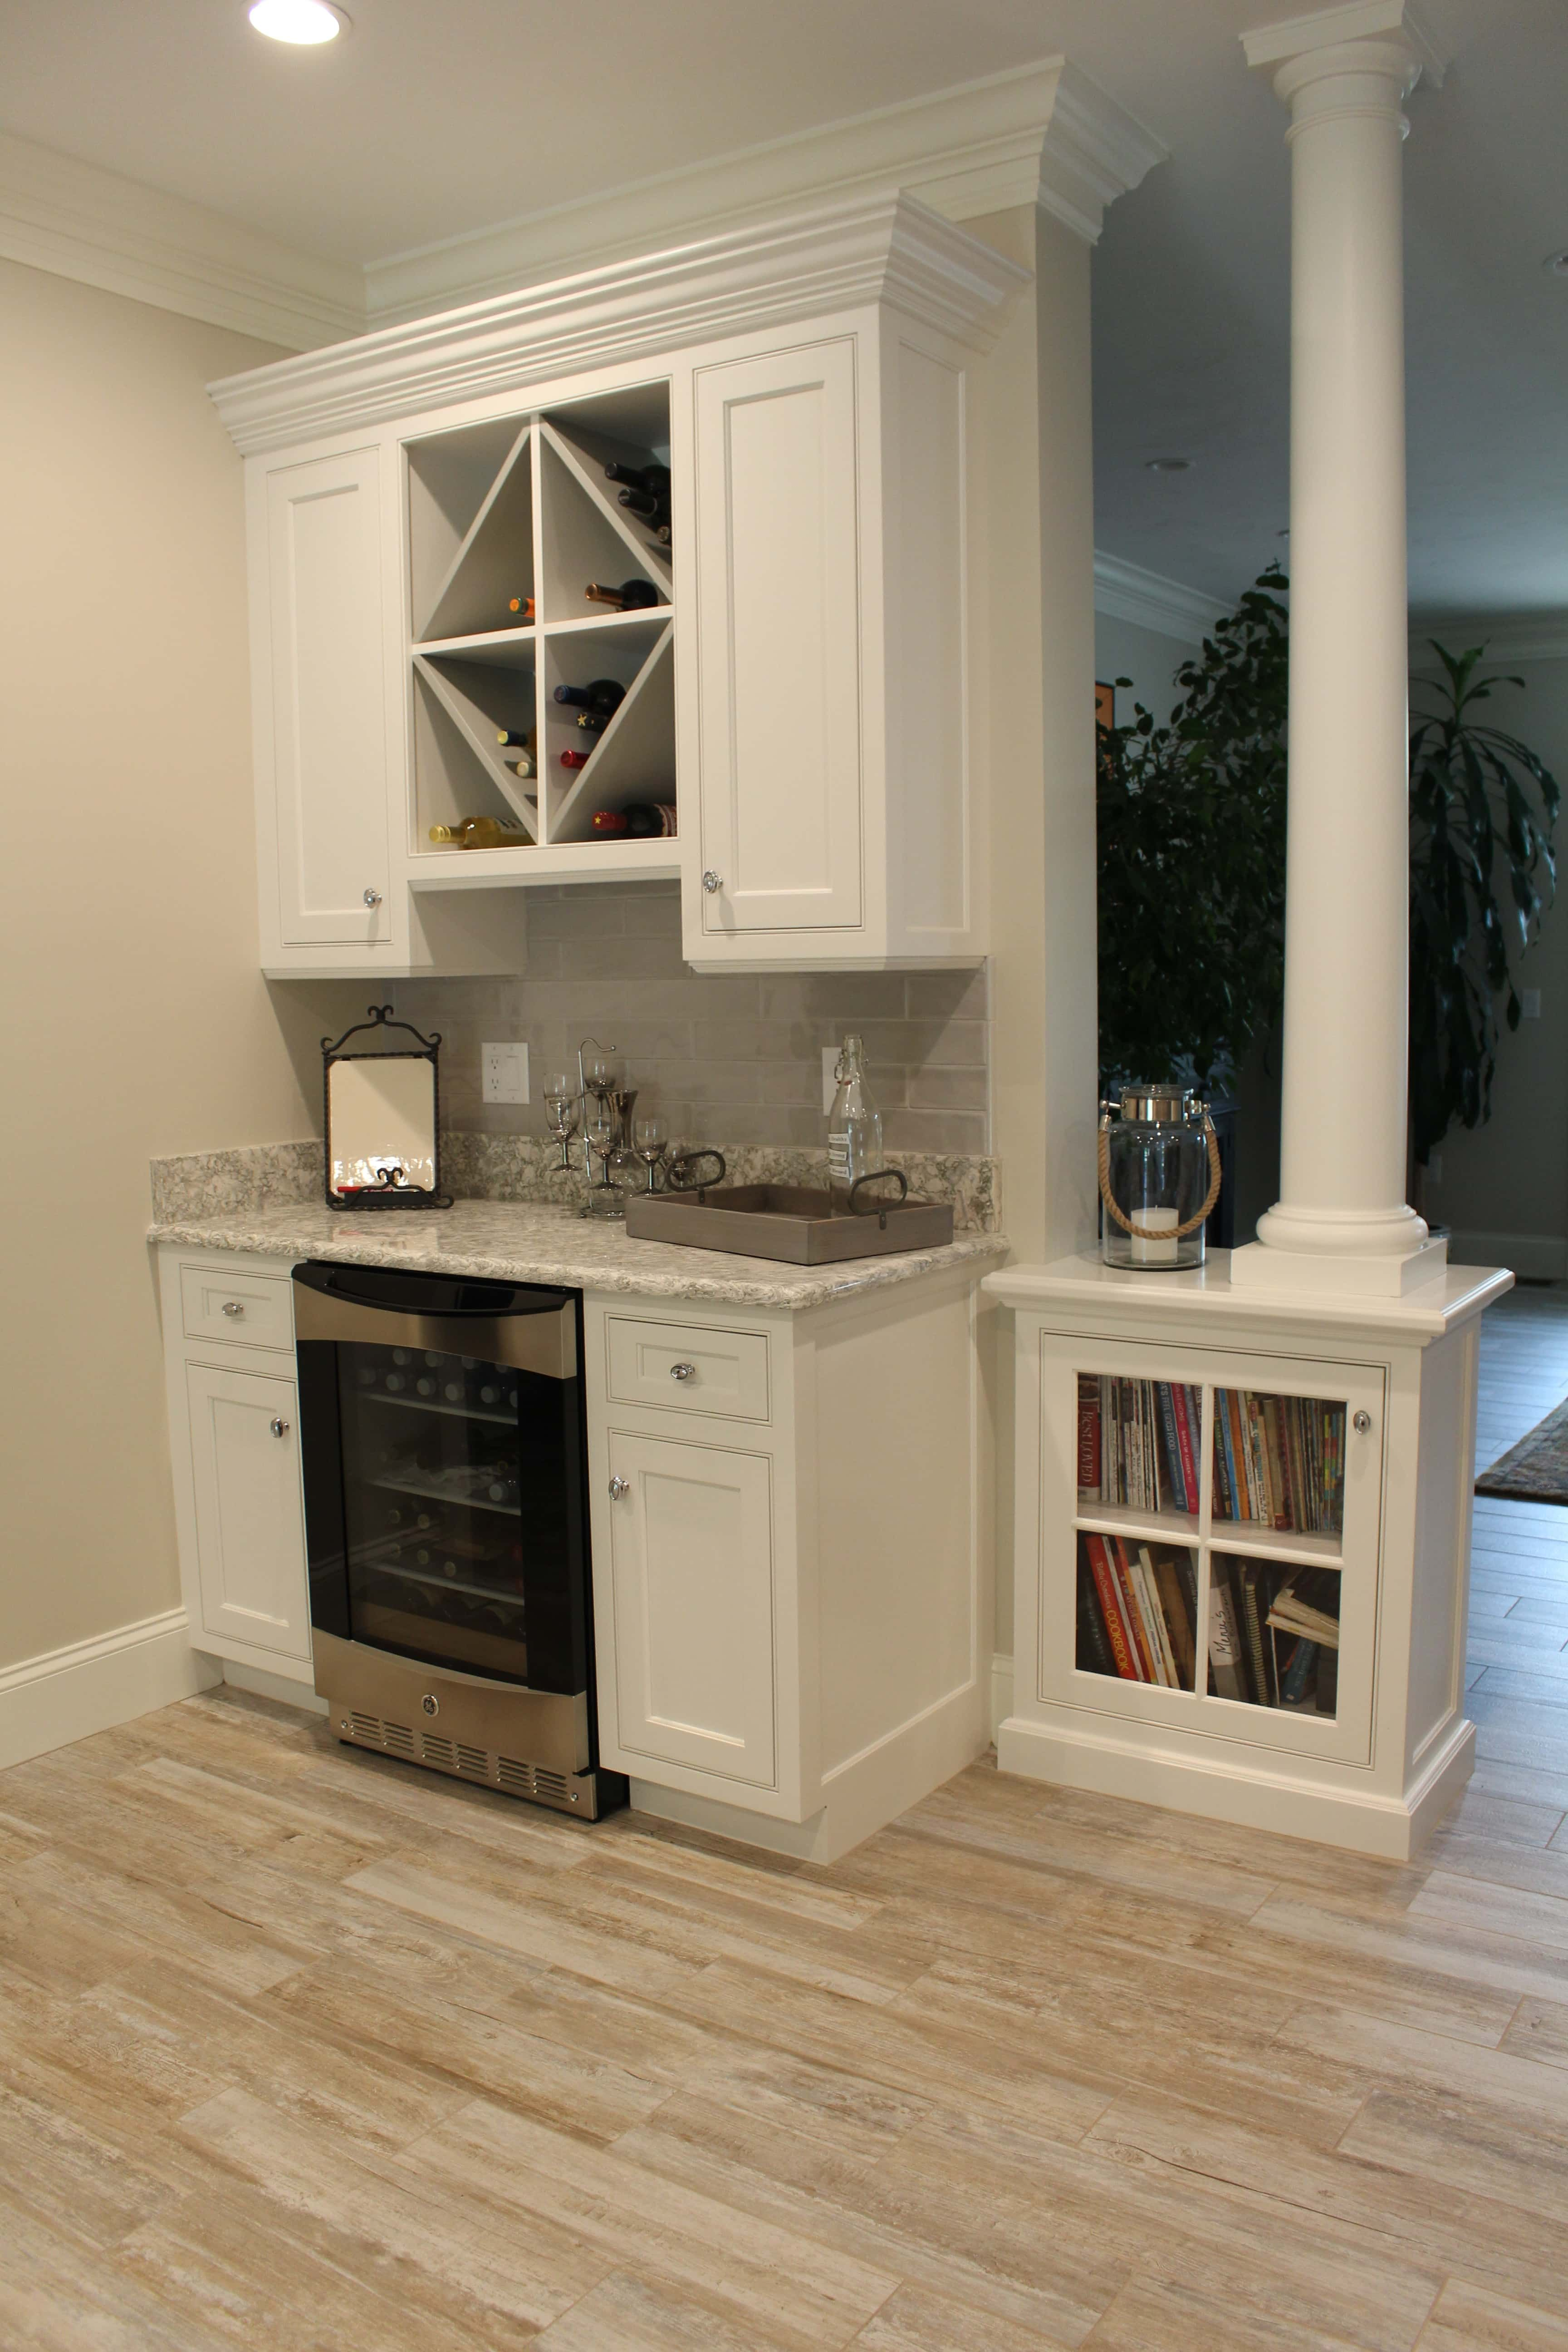 The Stone Cobblers Kitchen Cabinets And Countertops Ma Kitchen Cabinets And Countertops Cabinets And Countertops Kitchen Cabinets